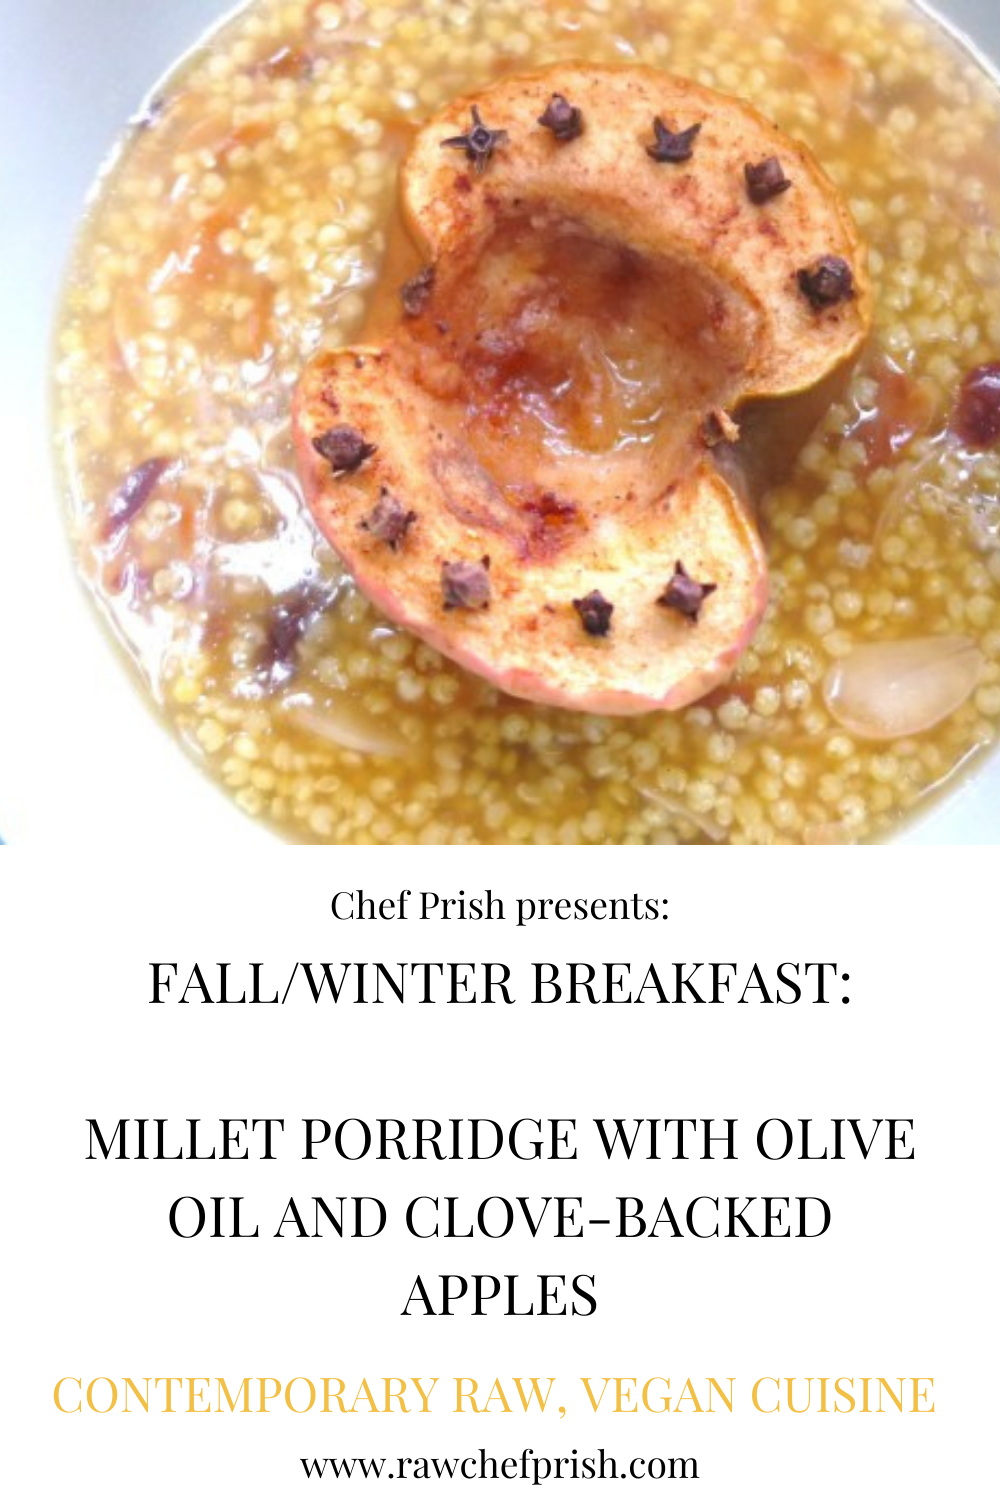 Millet Porridge with Olive Oil and Clove-Backed Apples